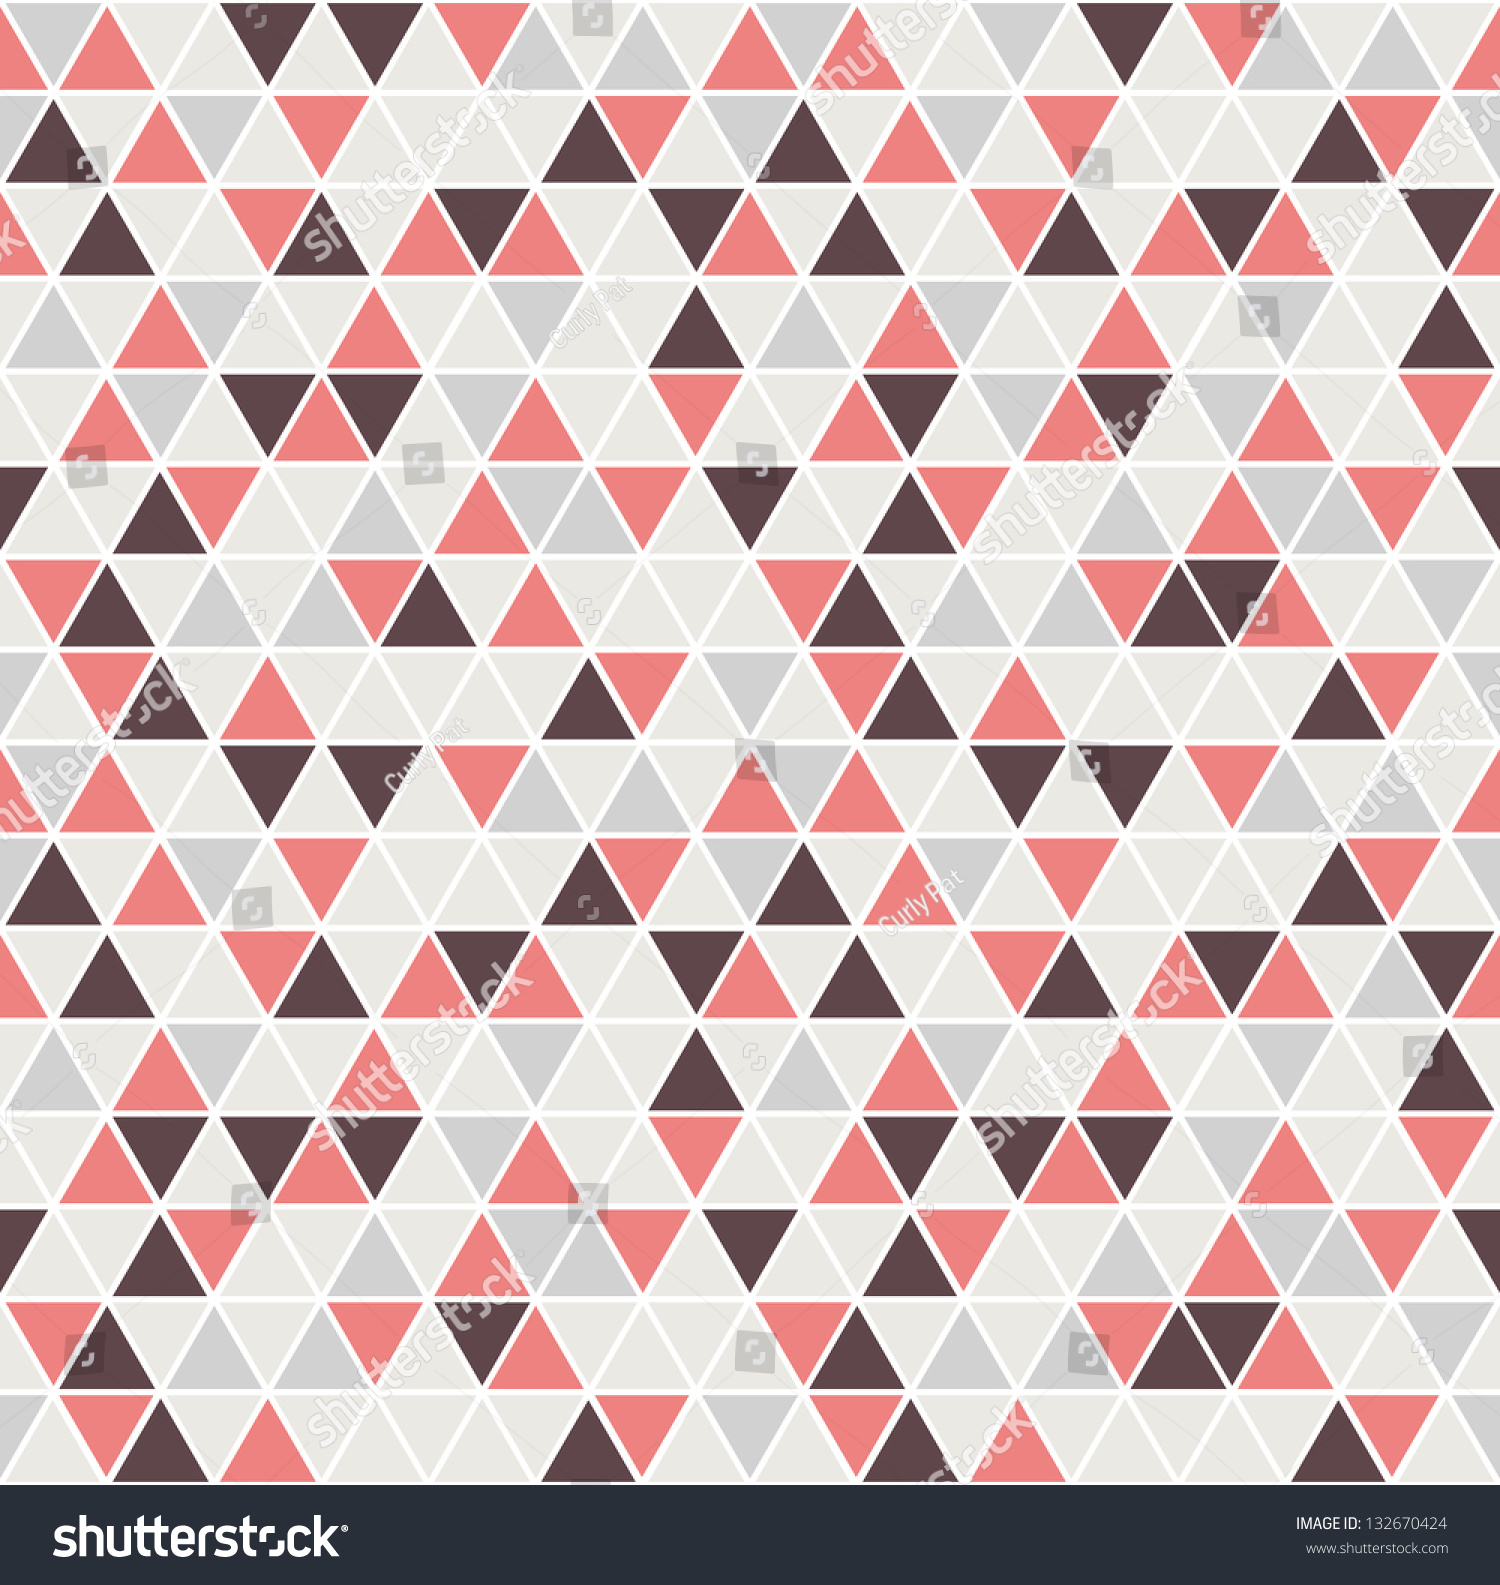 Triangle Stock Vectors Royalty Free Triangle